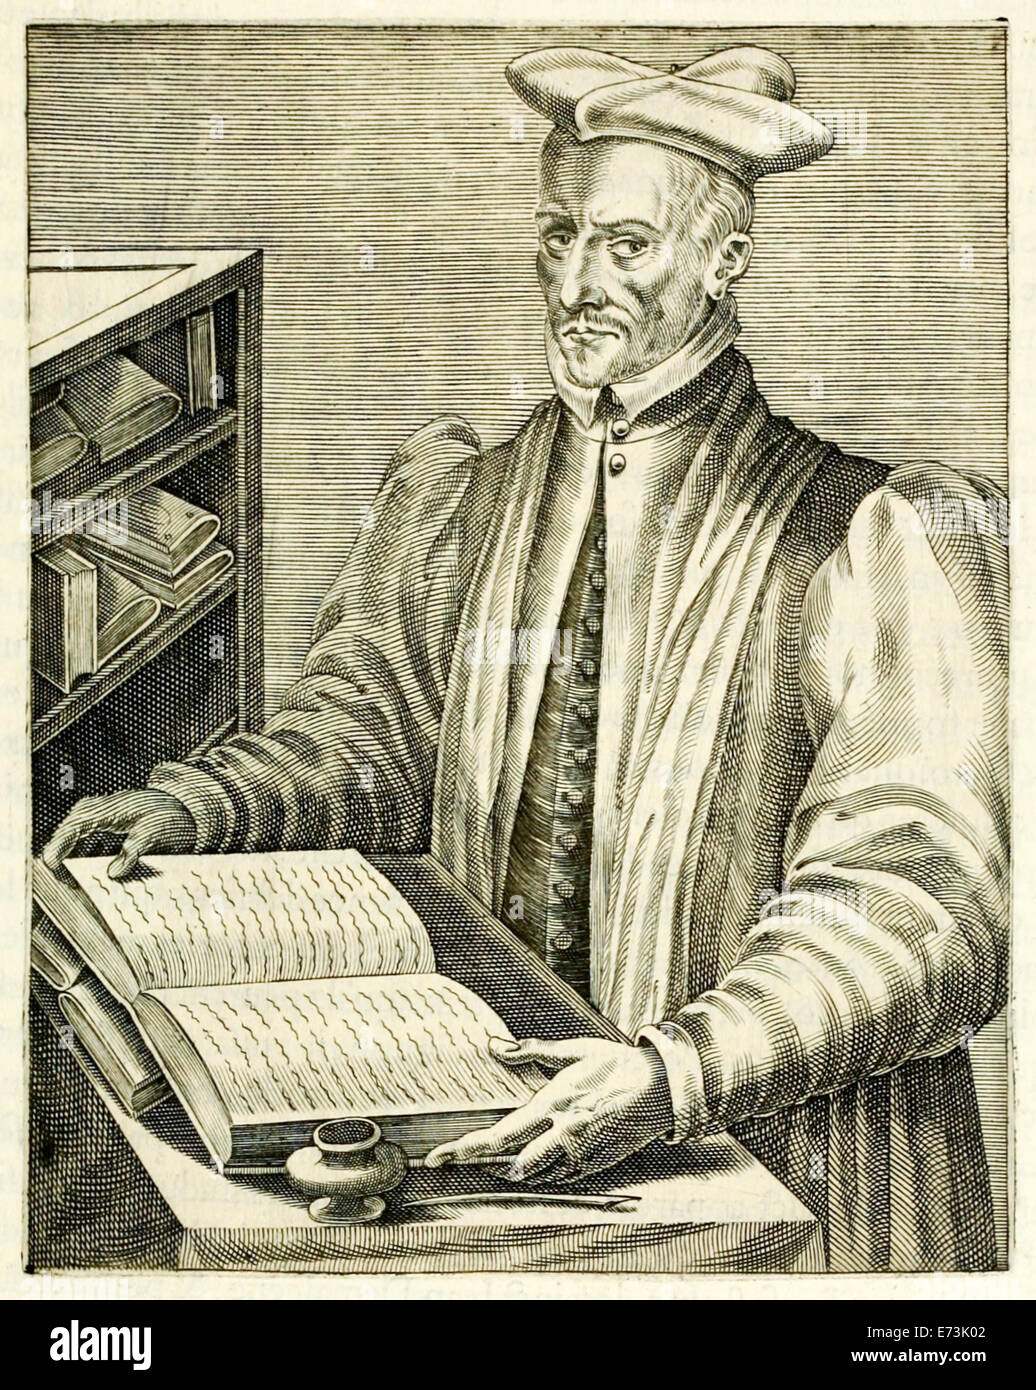 """Jacques de Billy de Prunay (1535-1581) from """"True Portraits…"""" by André Thévet published in 1584. See description Stock Photo"""